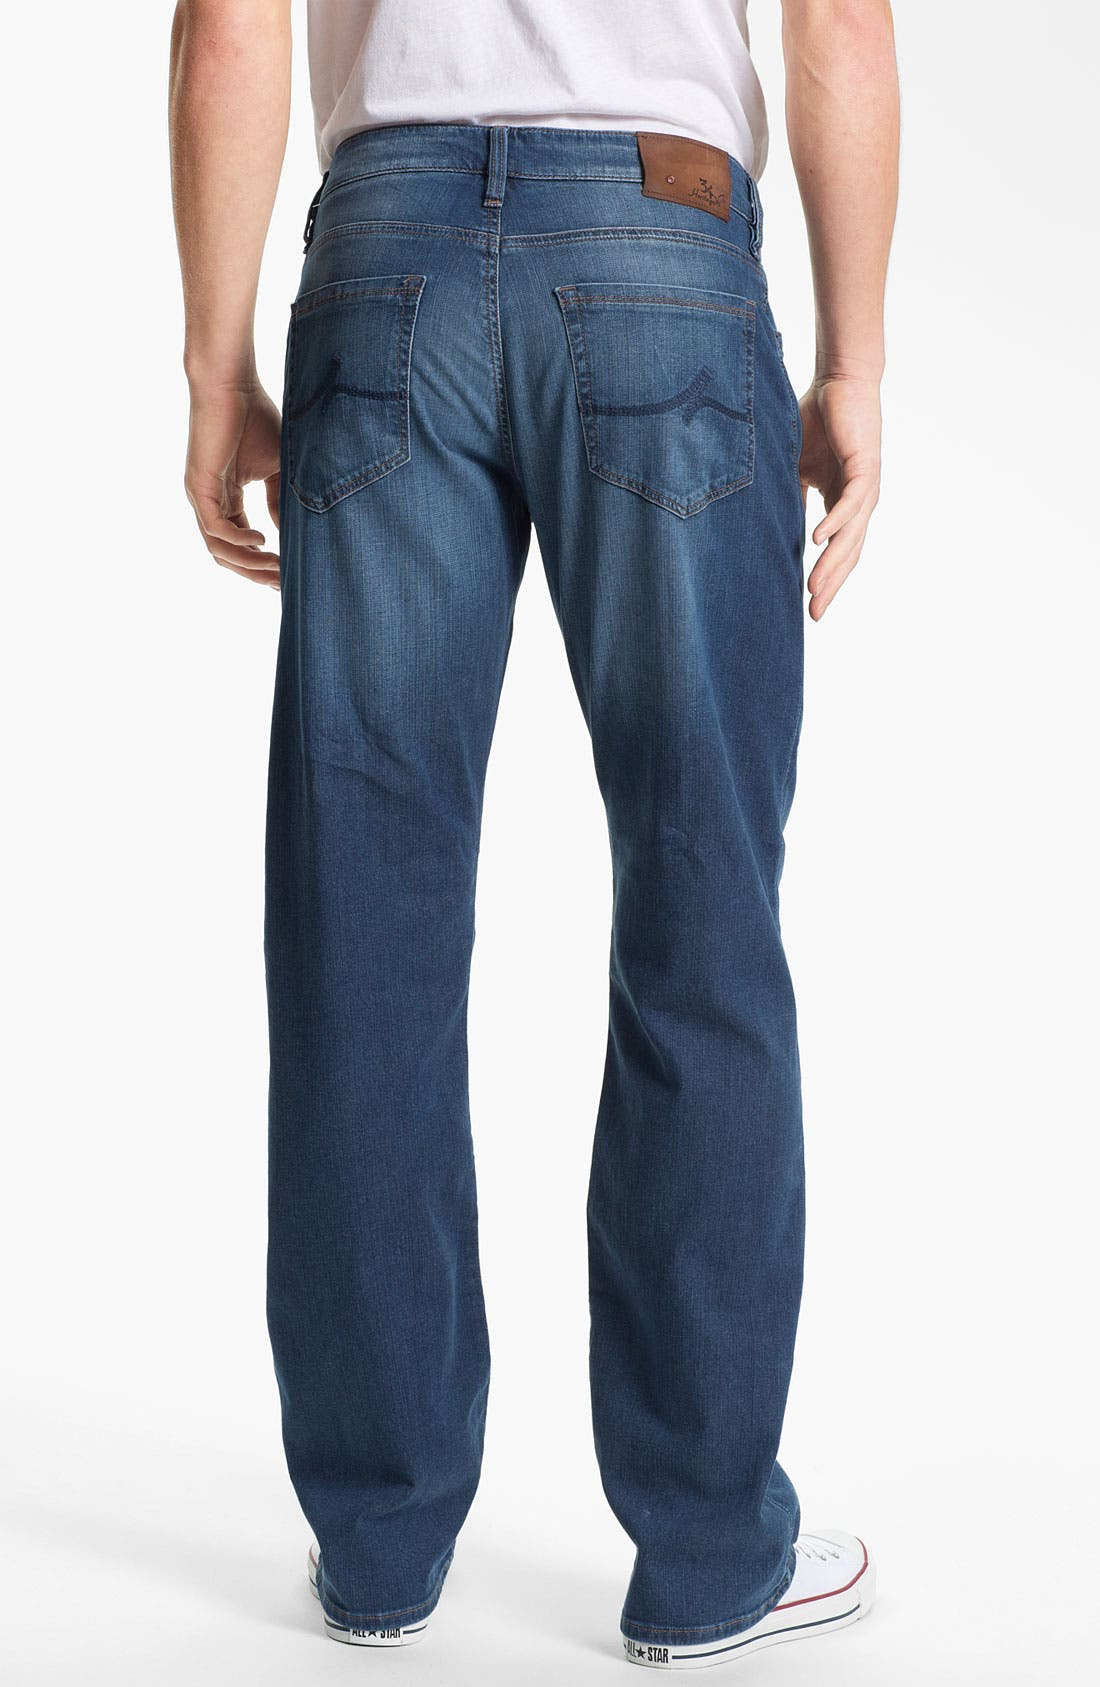 Alternate Image 2  - 34 Heritage 'Courage' Straight Leg Jeans (Mid Cashmere) (Online Exclusive)